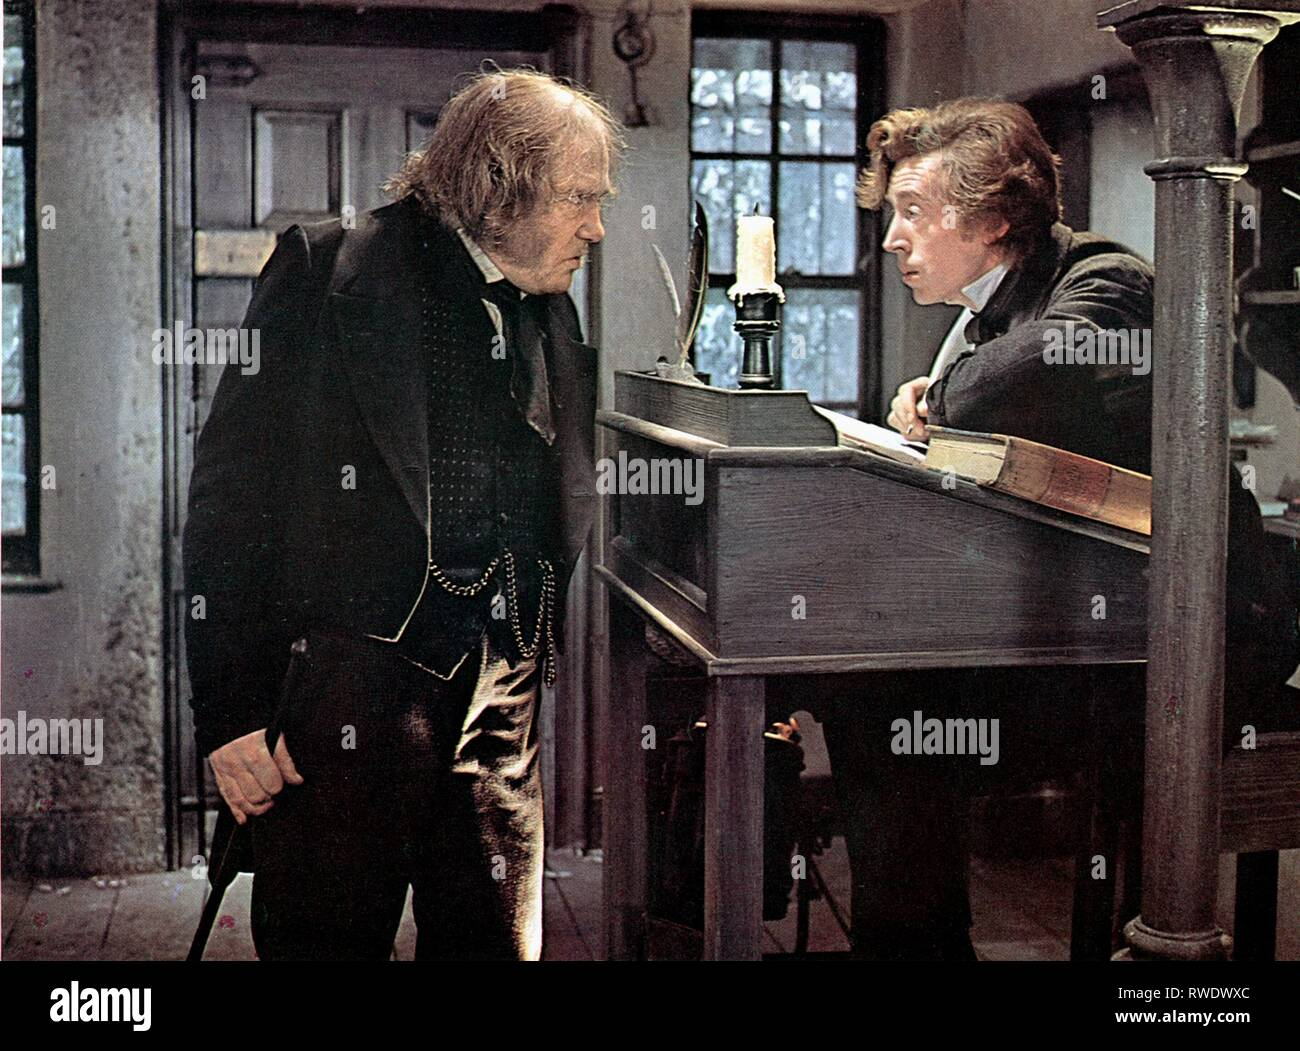 FINNEY,COLLINGS, SCROOGE, 1970 - Stock Image